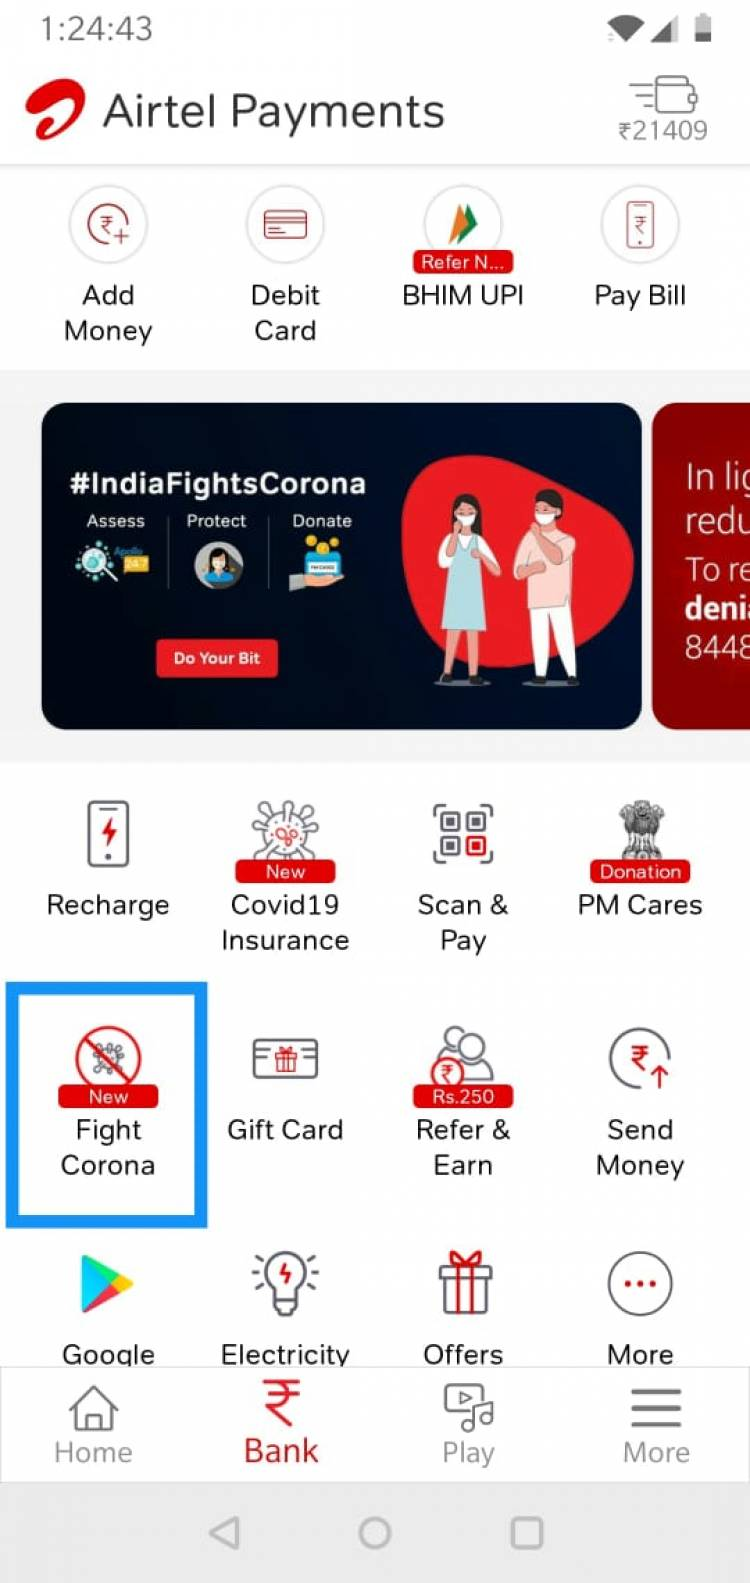 Airtel Payments Bank creates a dedicated 'Fight Corona' section in Airtel Thanks app